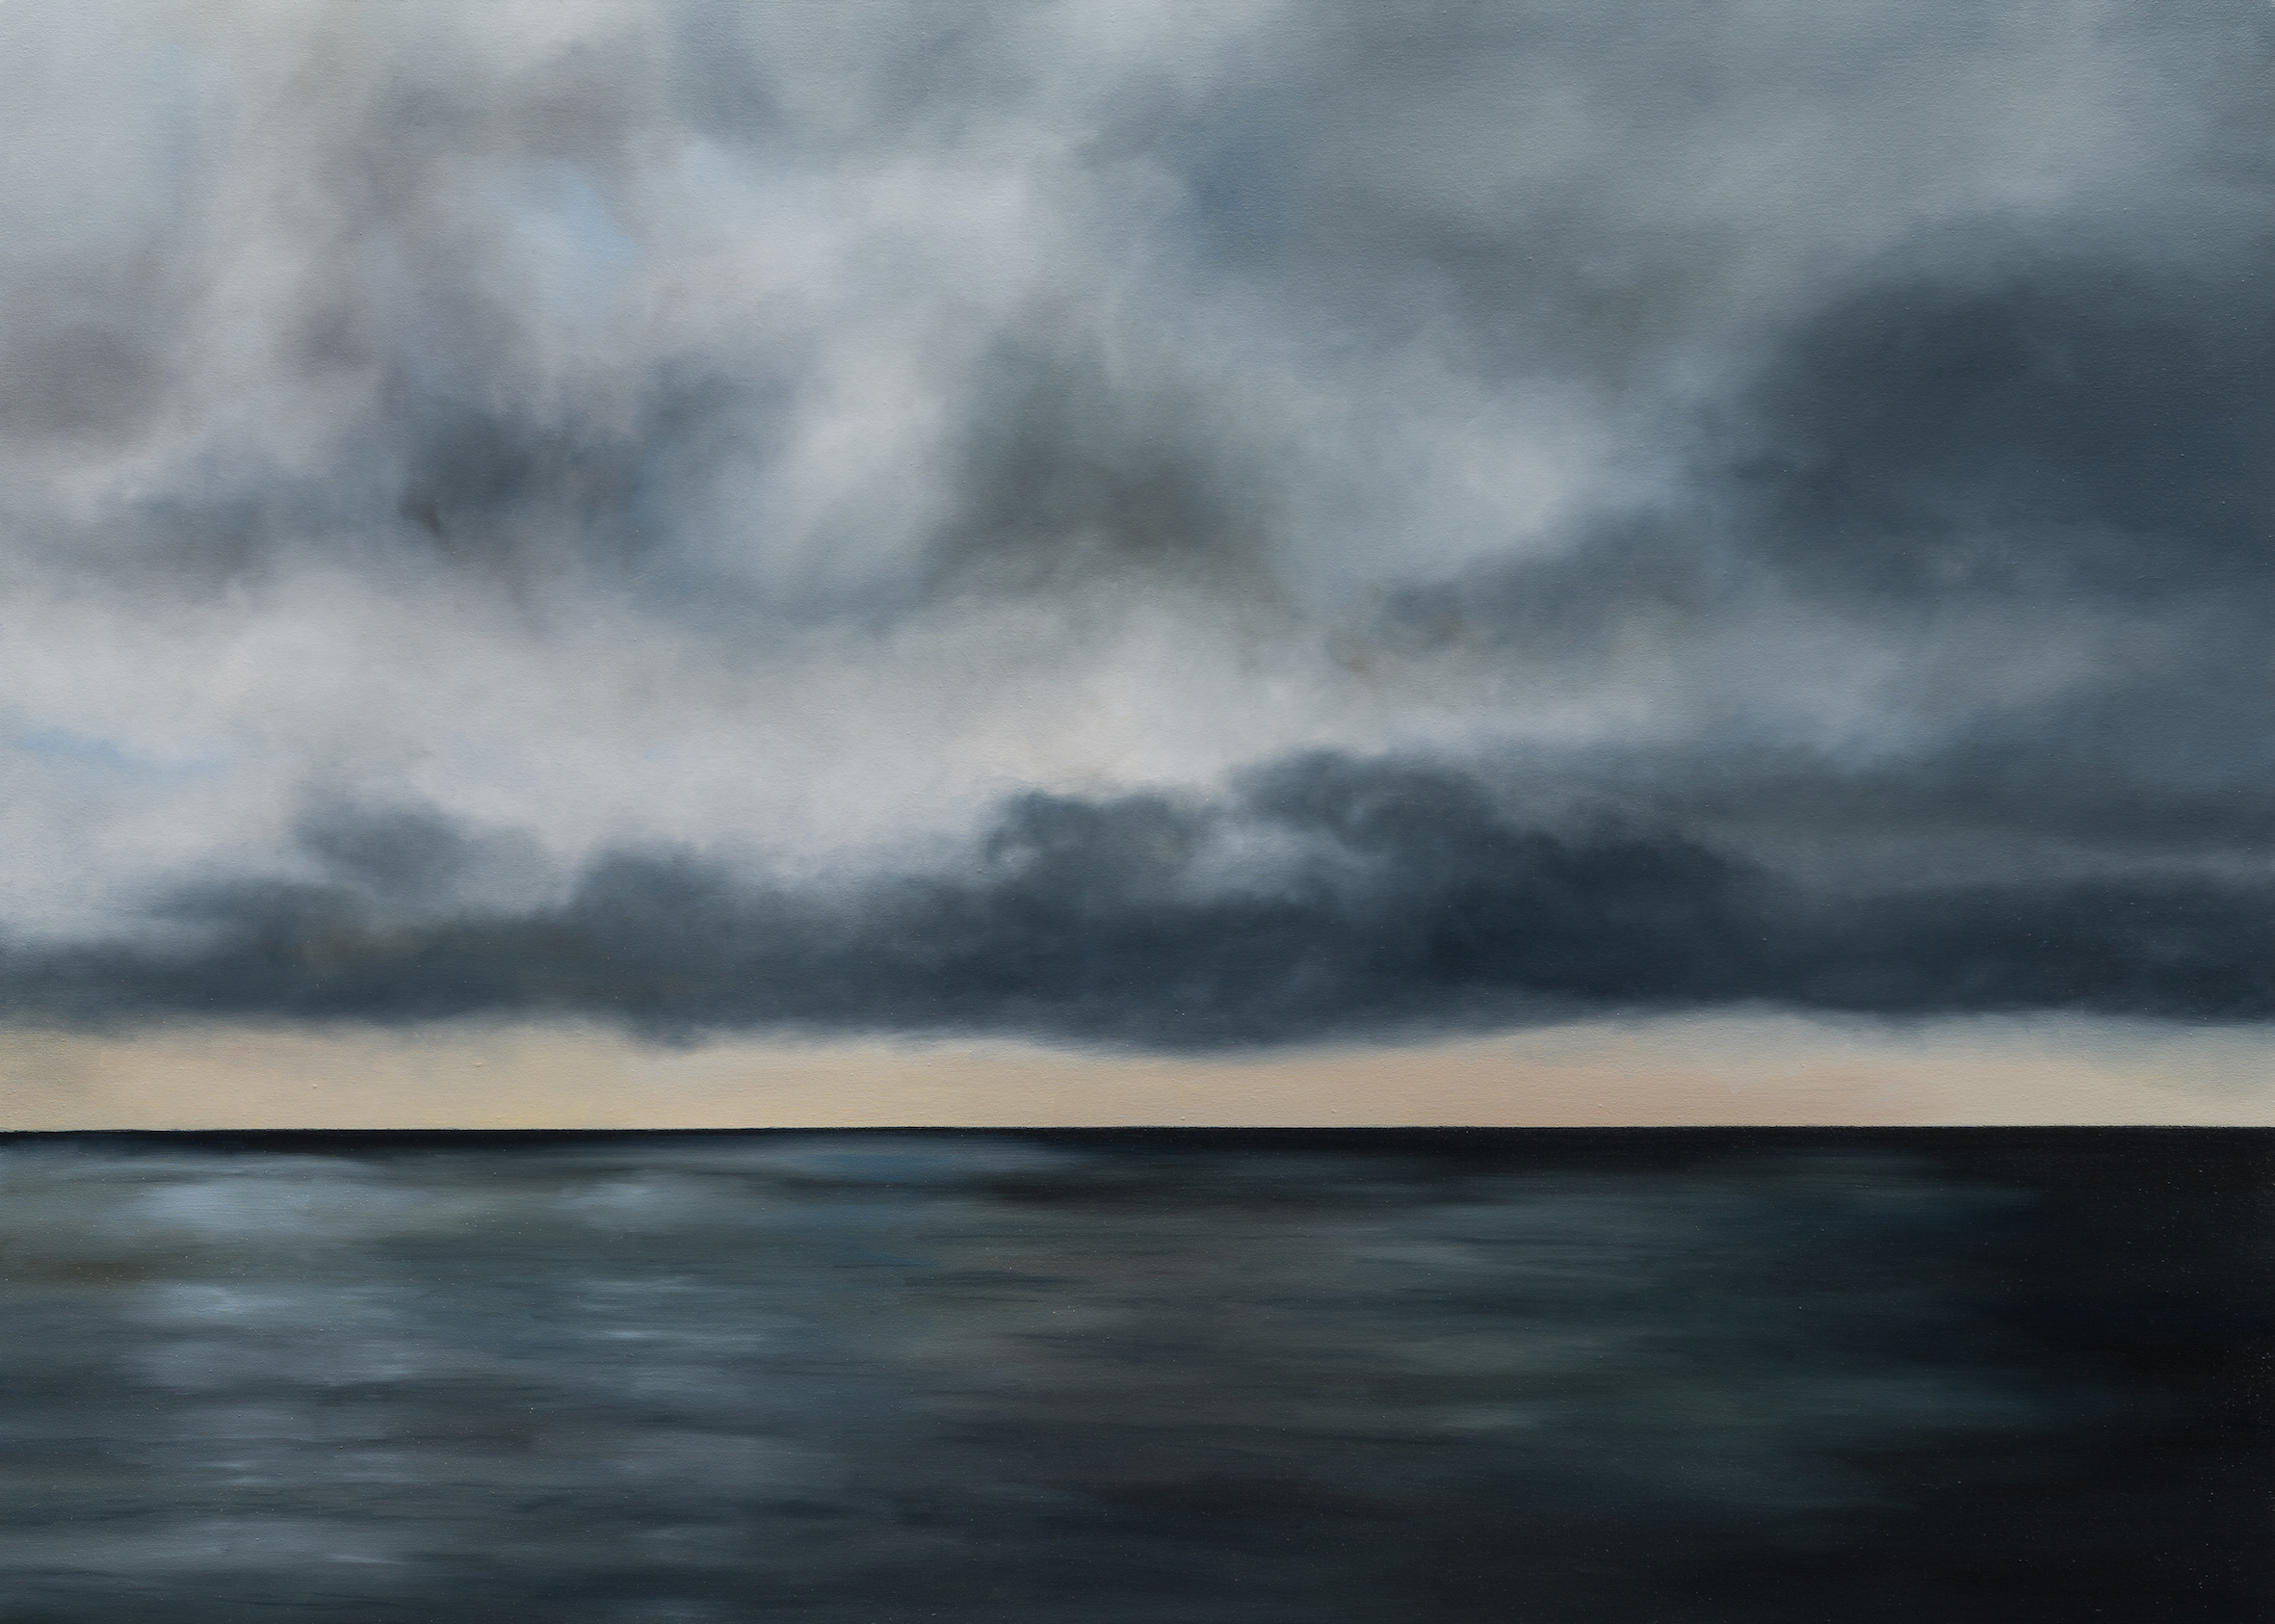 Sea watching; Grey waters, vast as an area of prayer (quote: R.S.Thomas) 100cm x120cm from The Long Silences, part of a private collection in Germany.